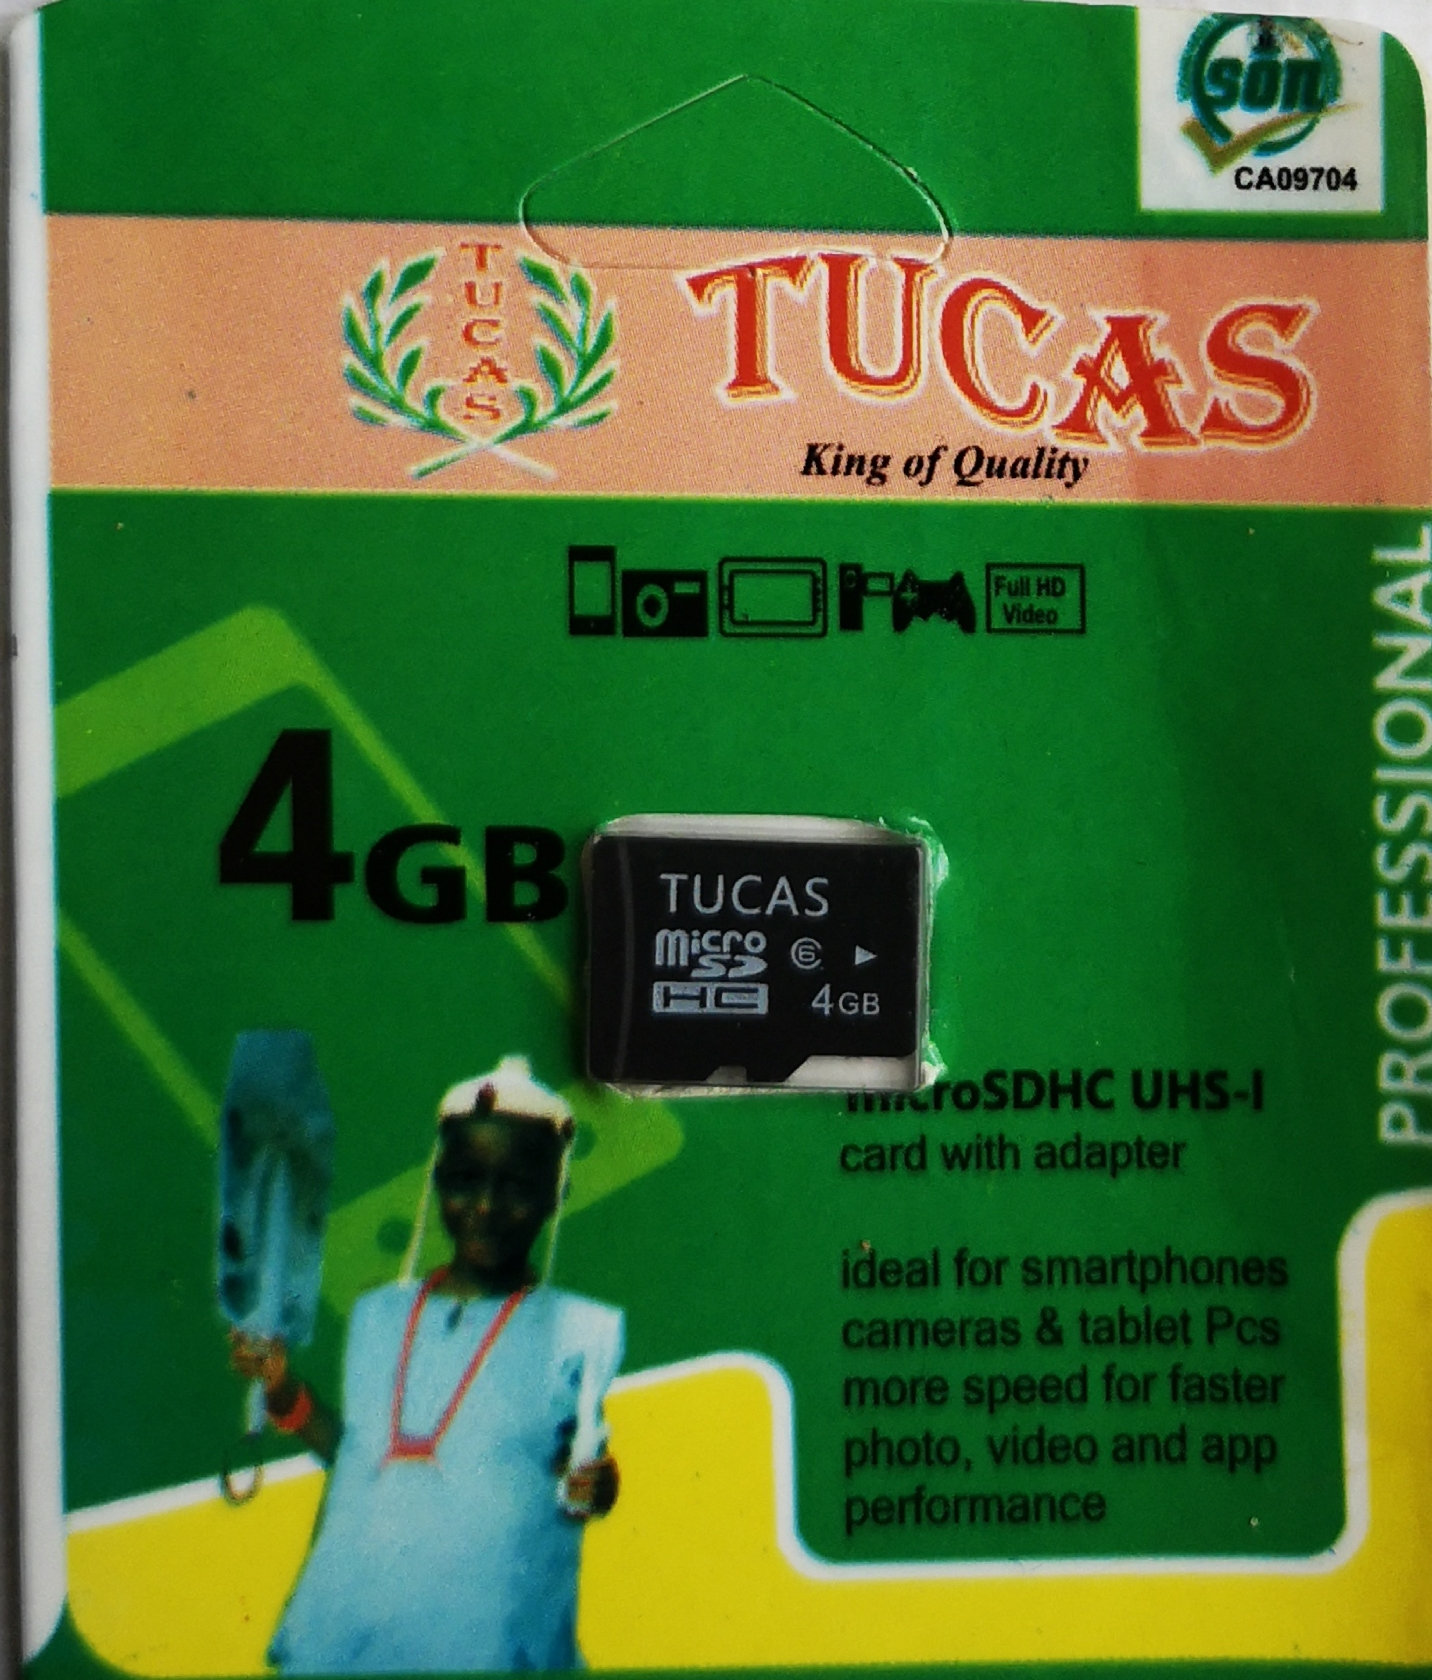 Tucas 4gb memory card mini pack